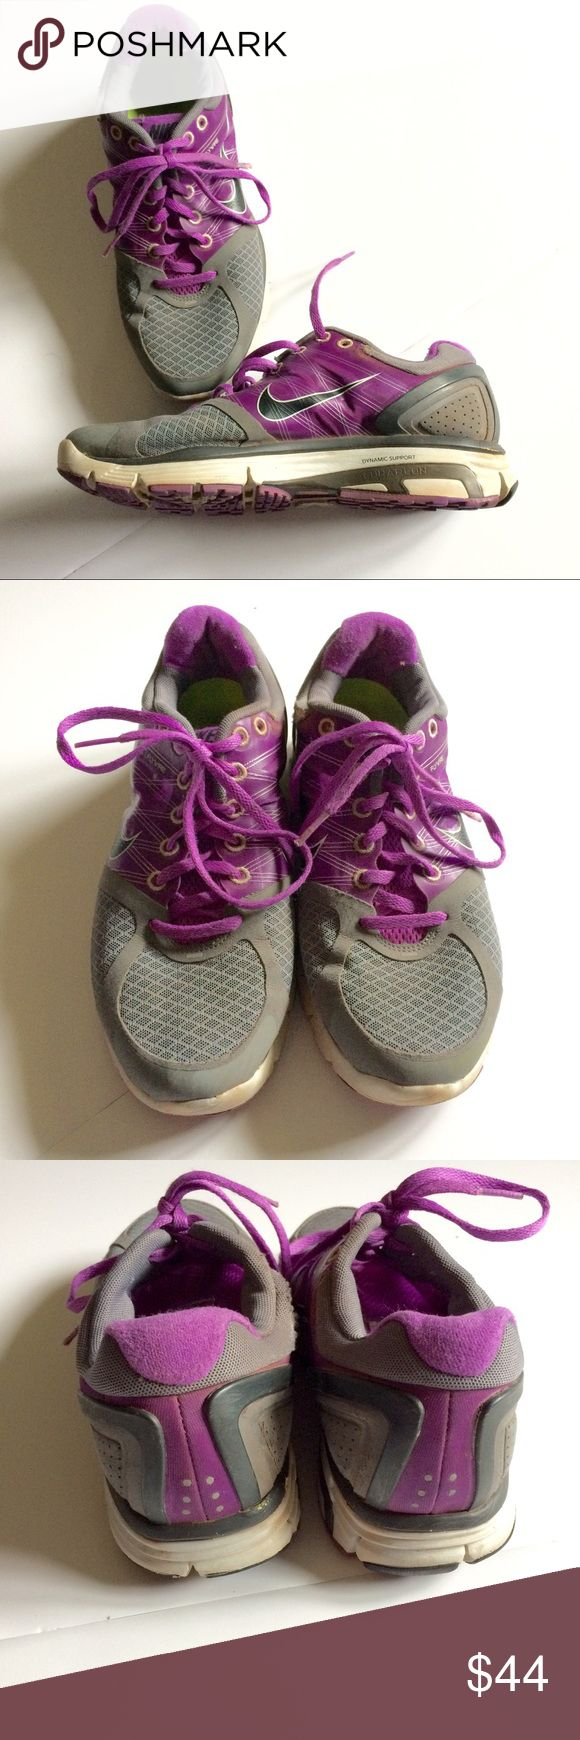 Nike Lunarglide 2 grey and purple running shoes Make an offer! No trades. Bundle and save! Nike Shoes Athletic Shoes